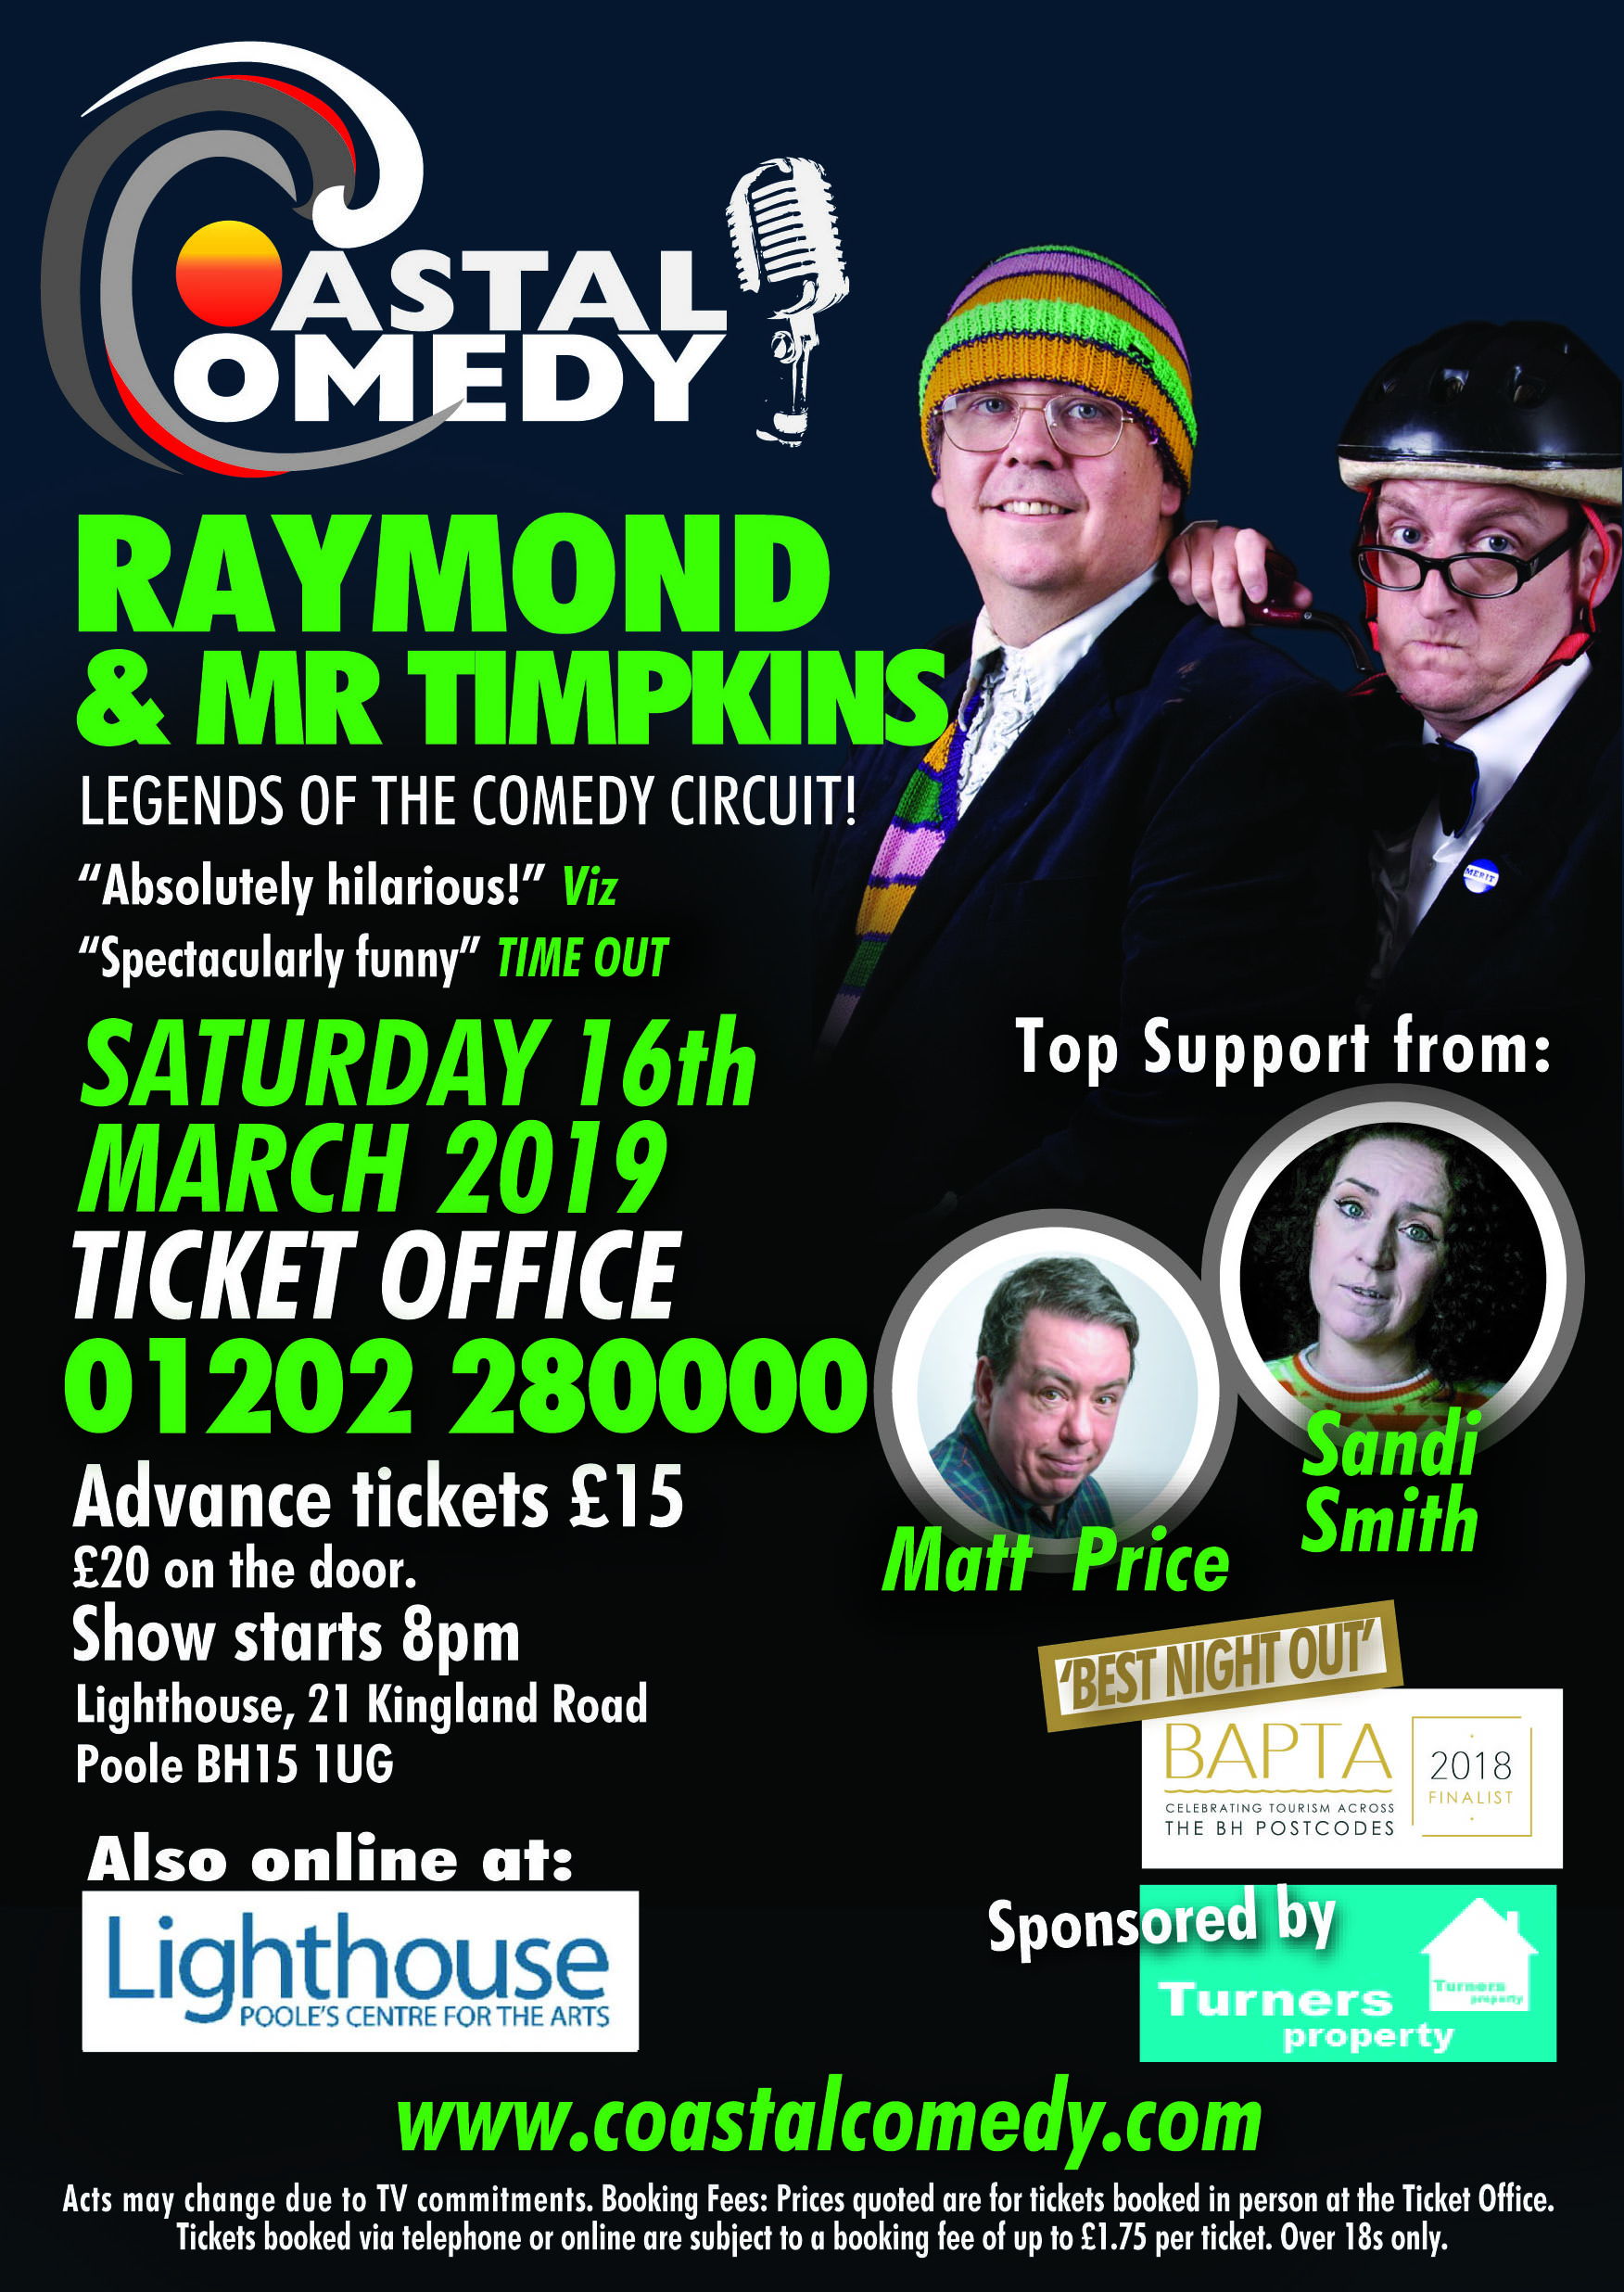 Lighthouse, poole, dorset, whatson, standup, comedy, lol, jokes, night life, entertainment, arts,